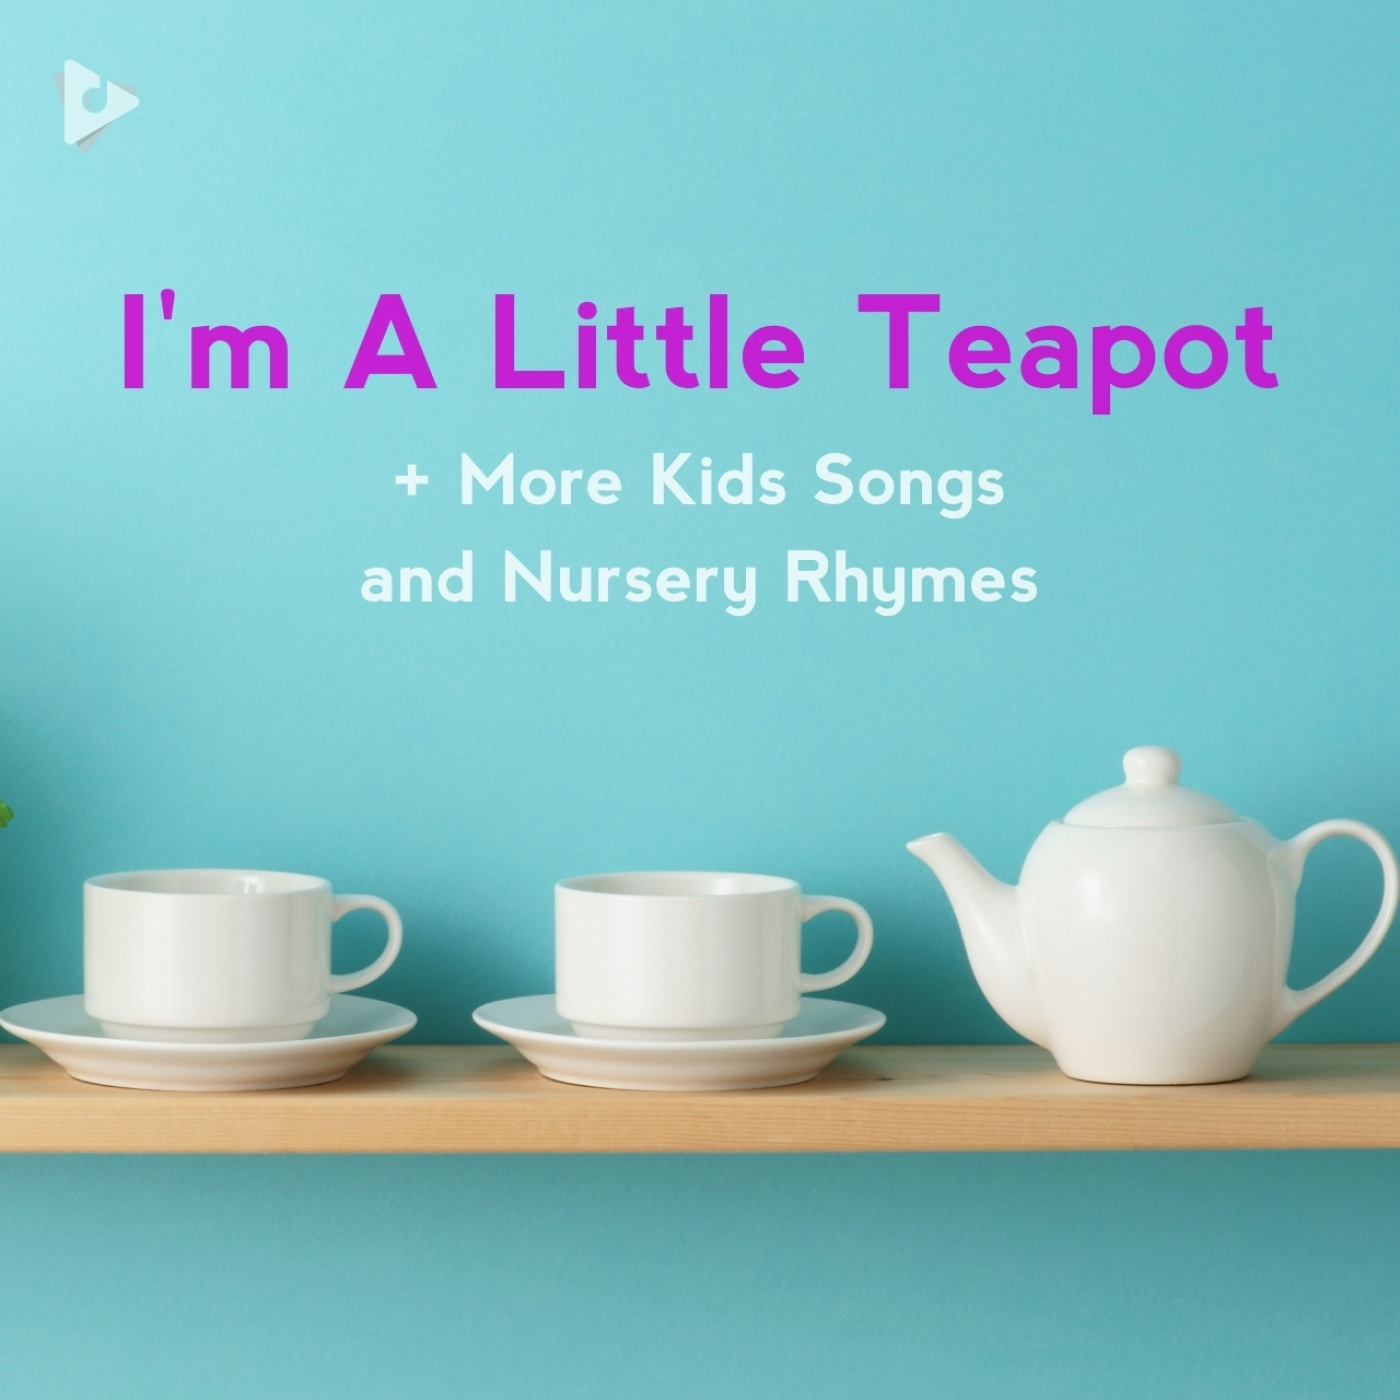 I'm A Little Teapot + More Kids Songs and Nursery Rhymes